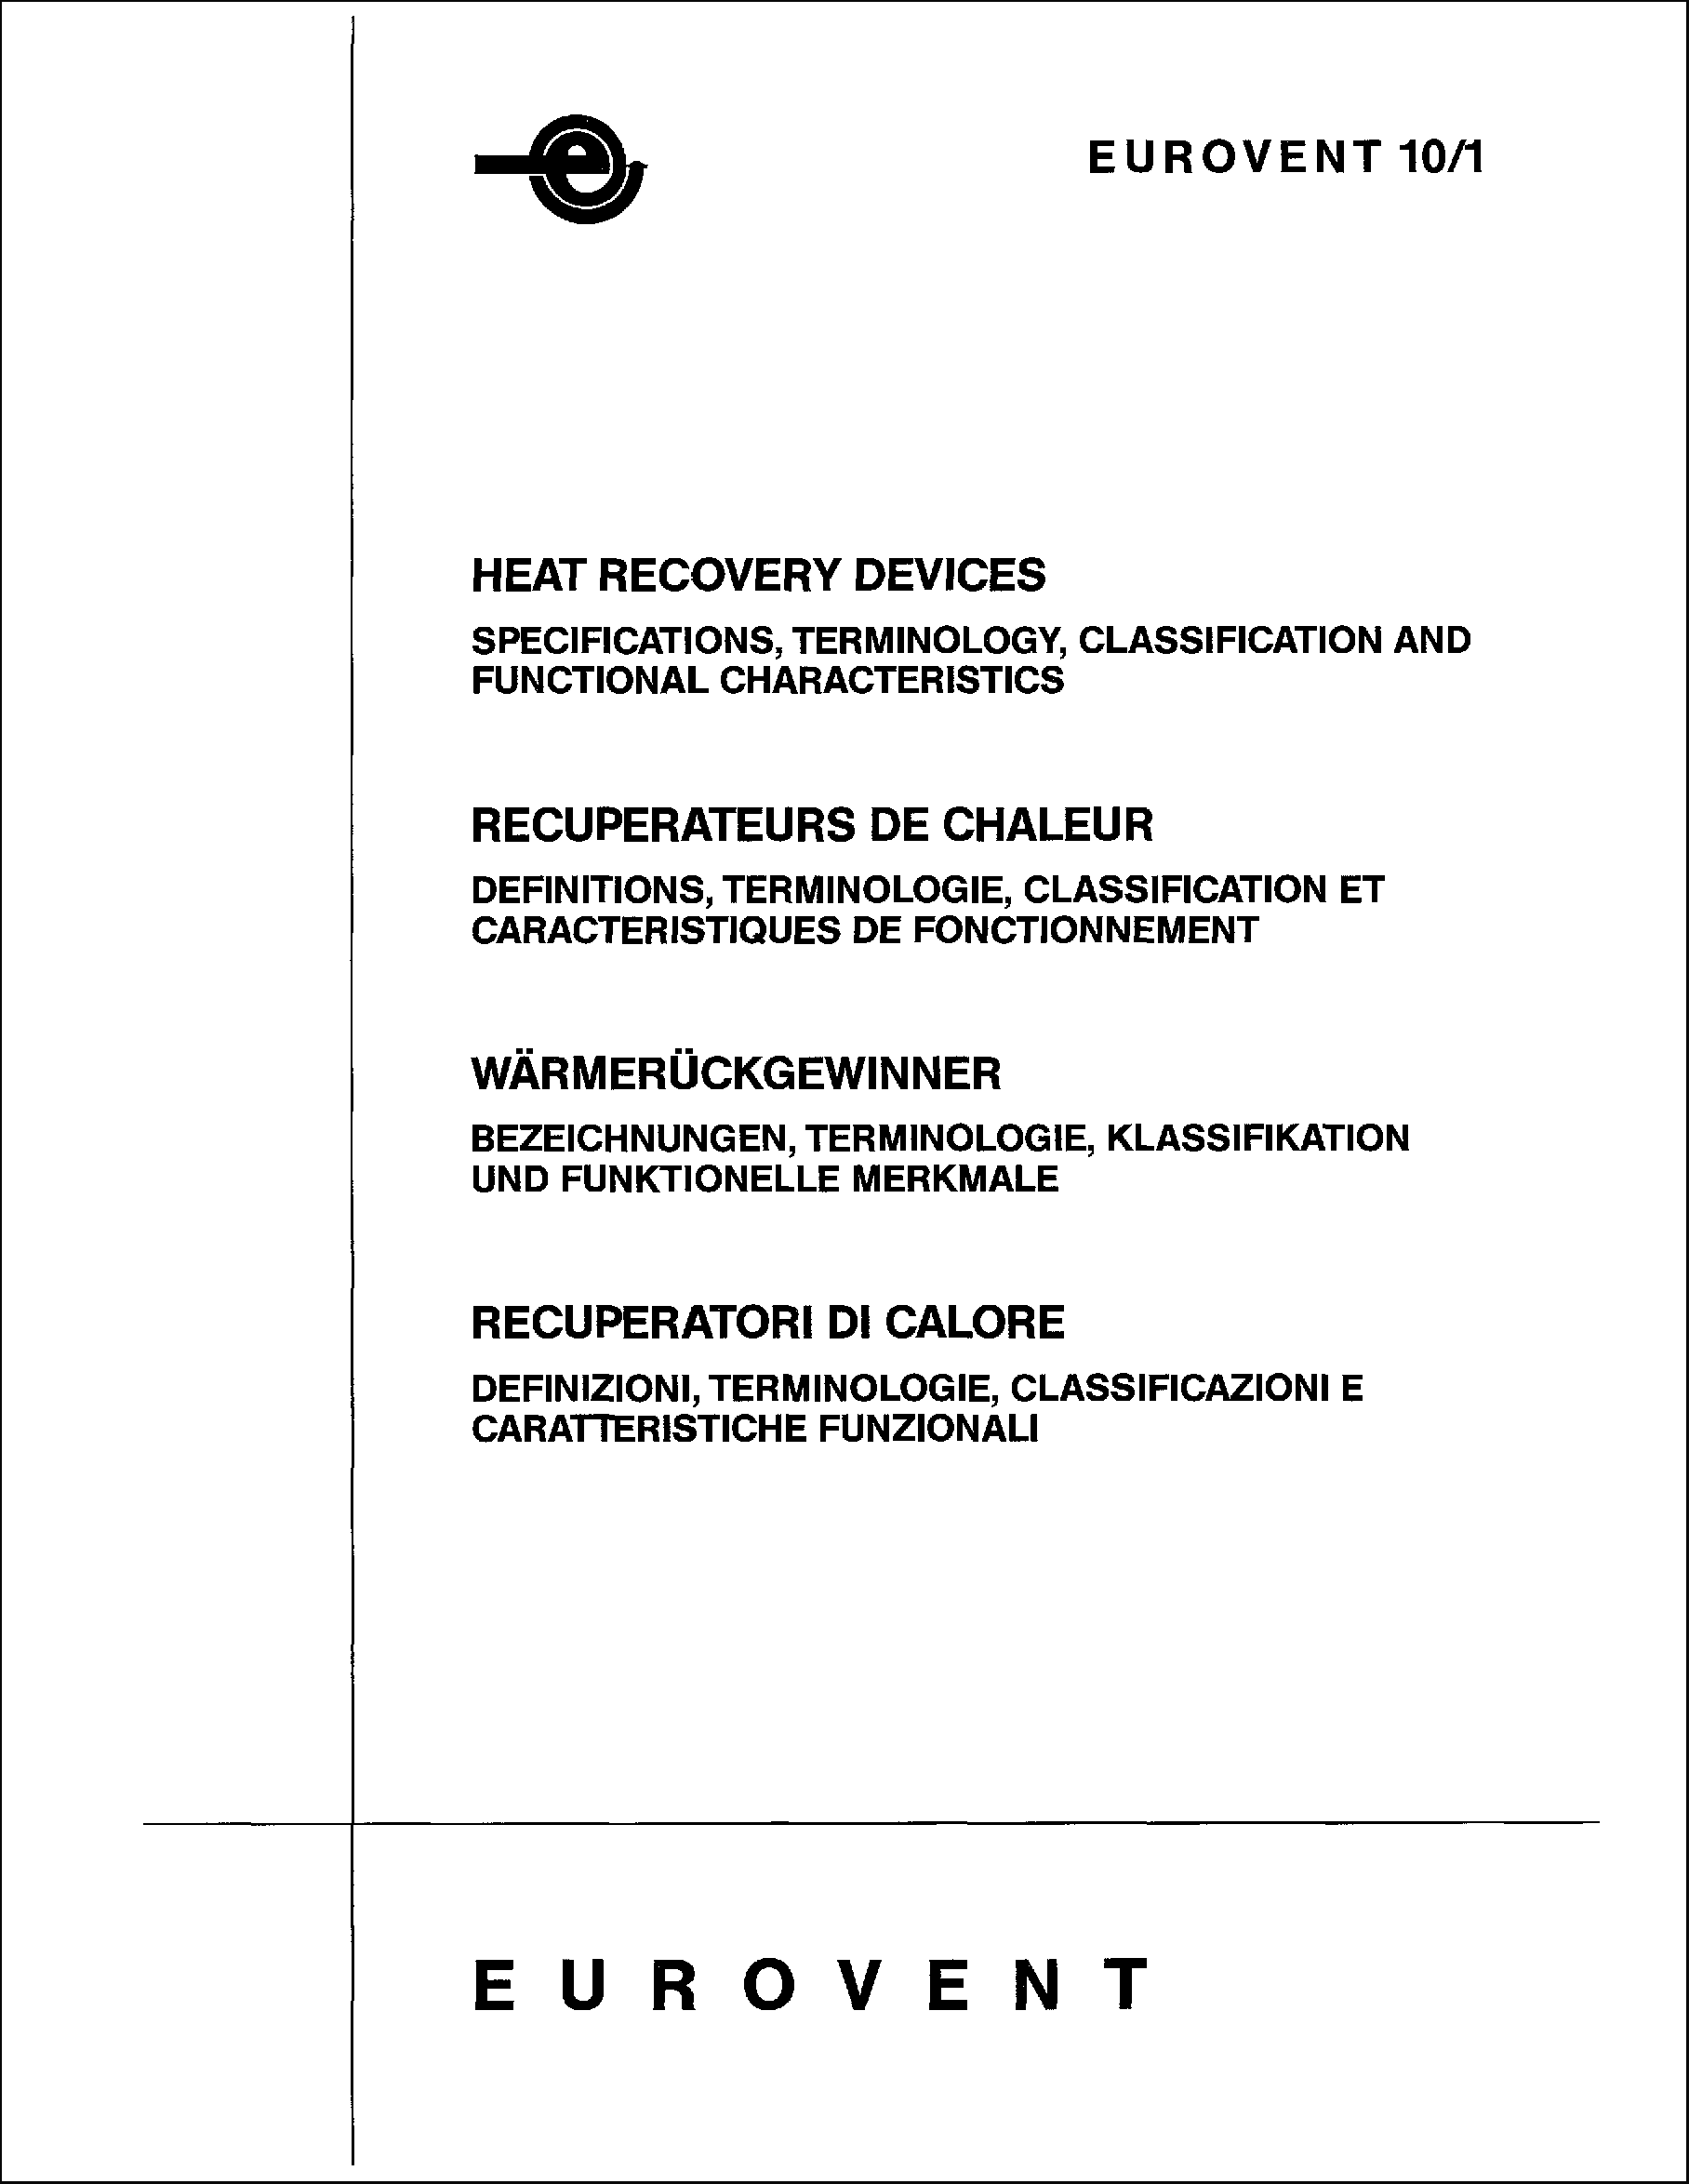 1986 - Heat Recovery Devices: Specifications, terminology, classification and functional characteristics